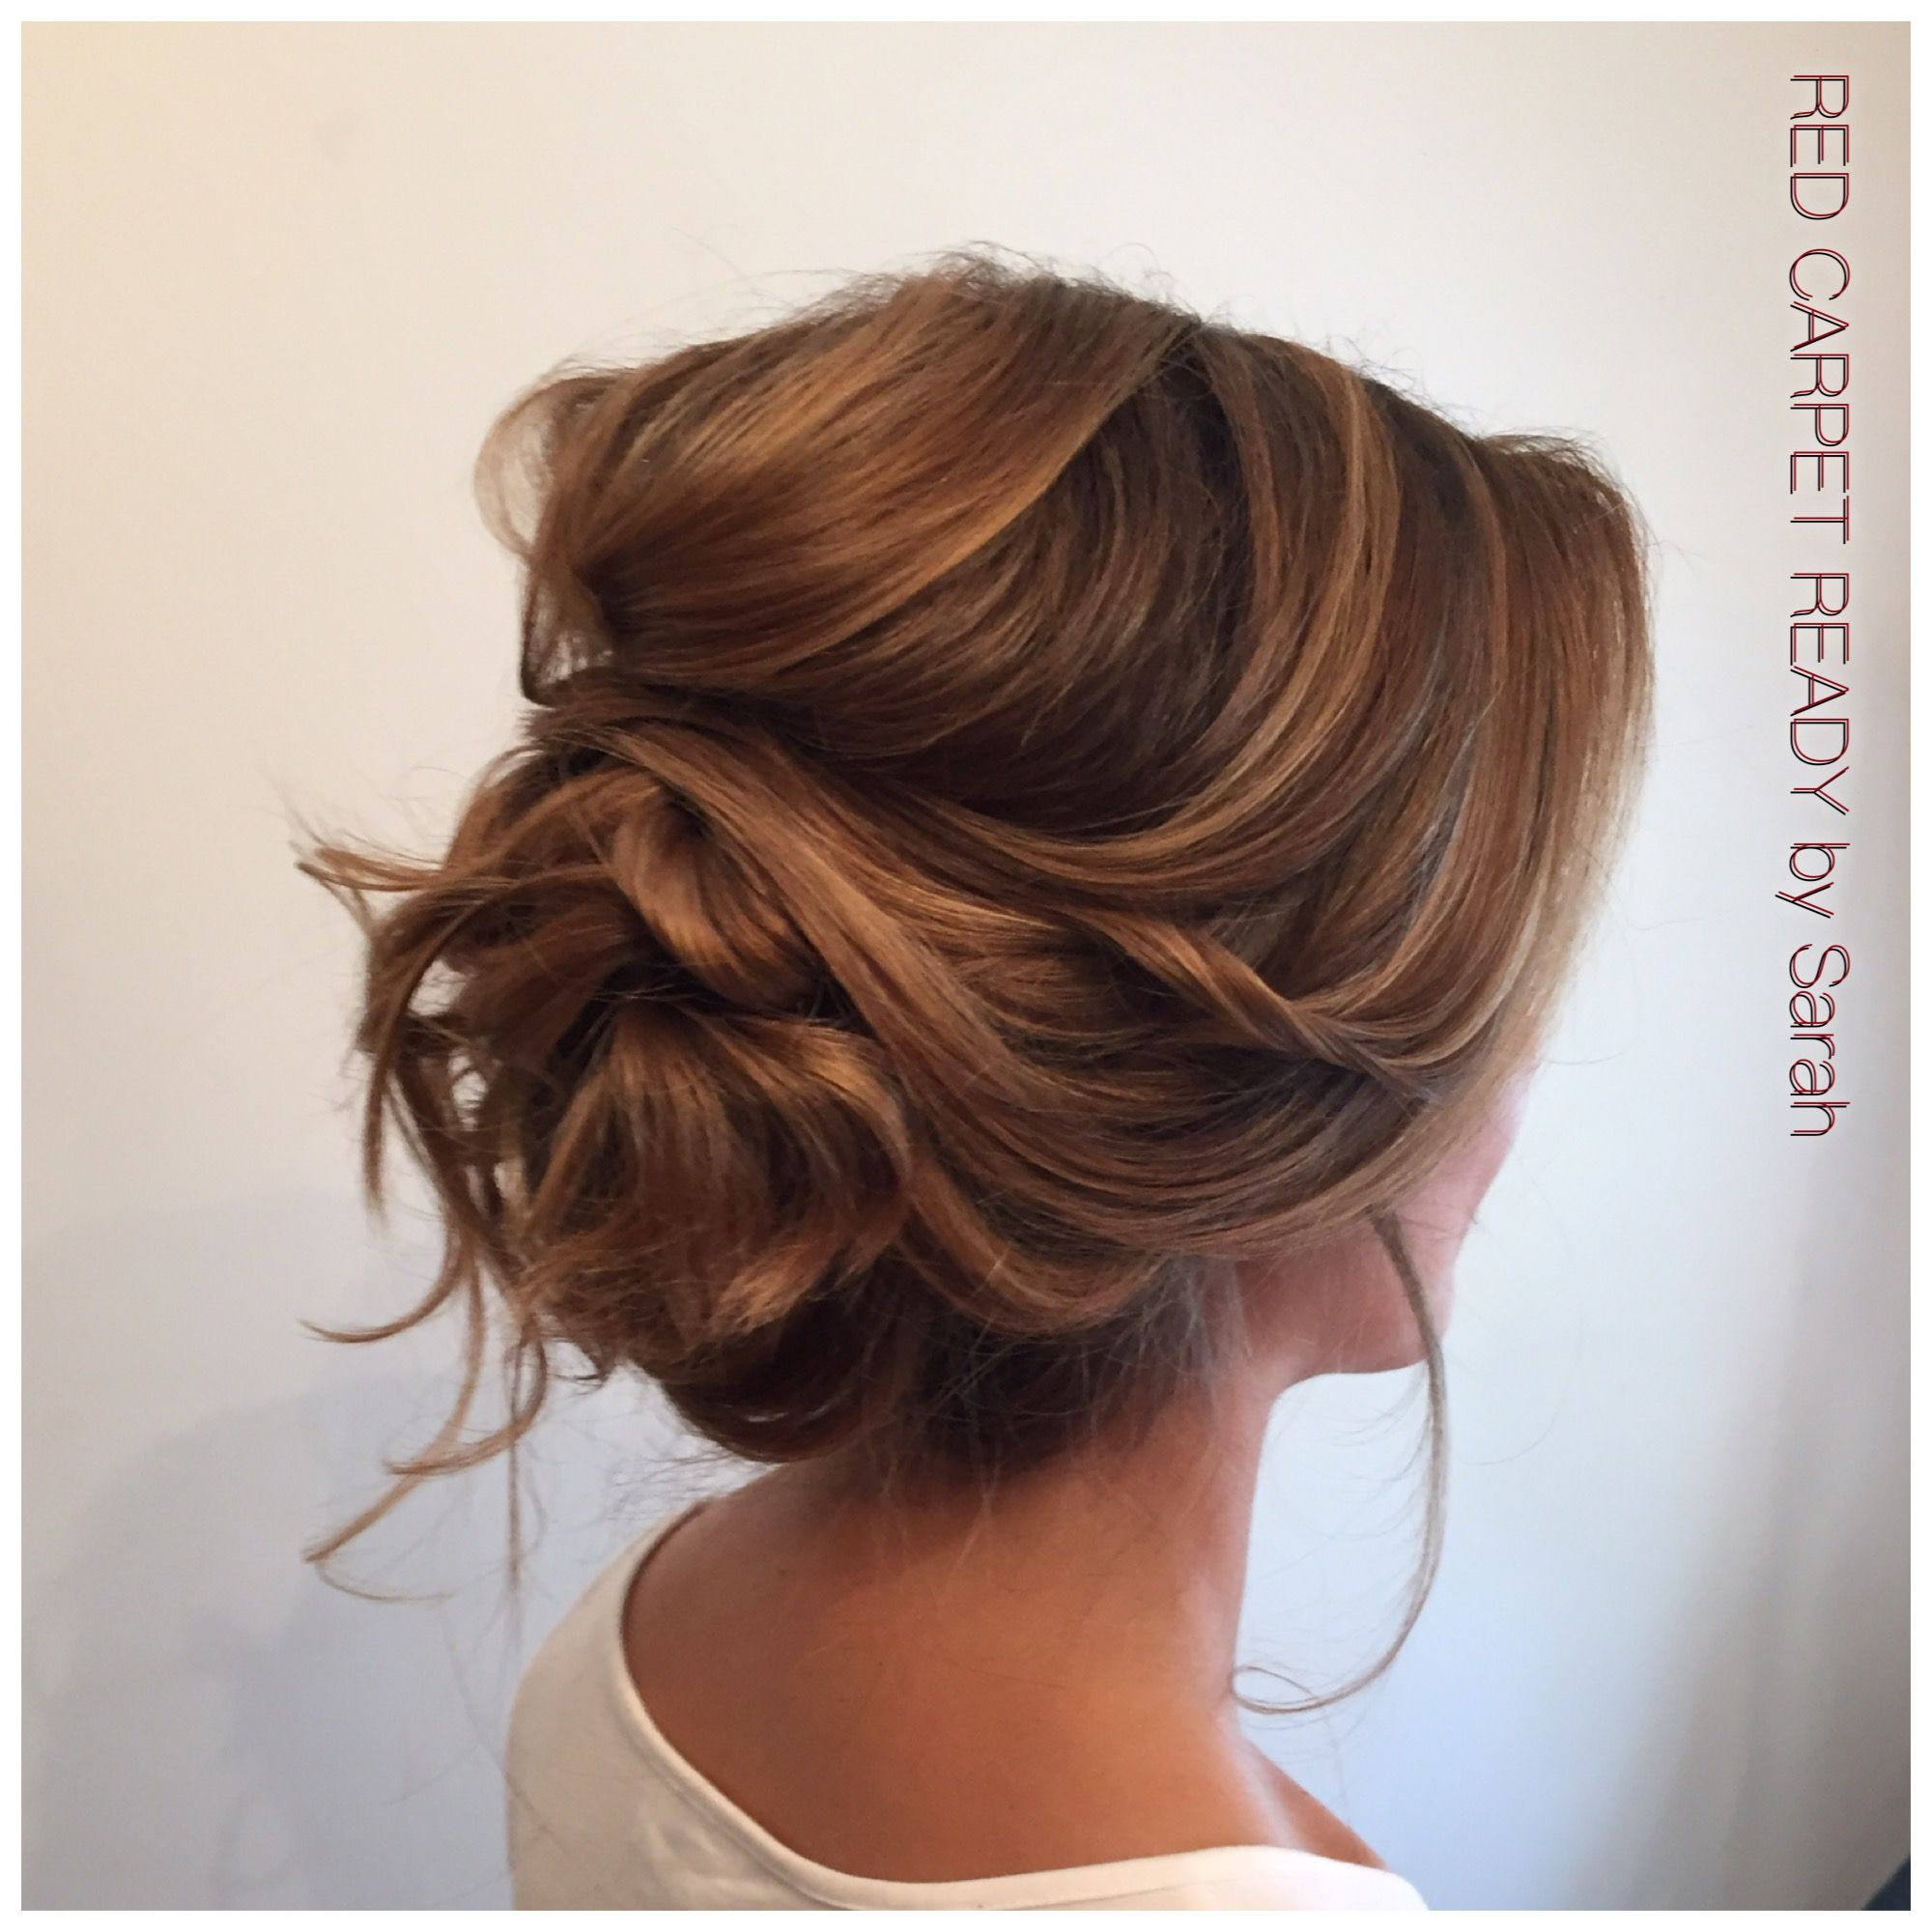 Wedding Party Hairstyle For Thin Hair: Soft Low Voluminous Updo Hair By Me